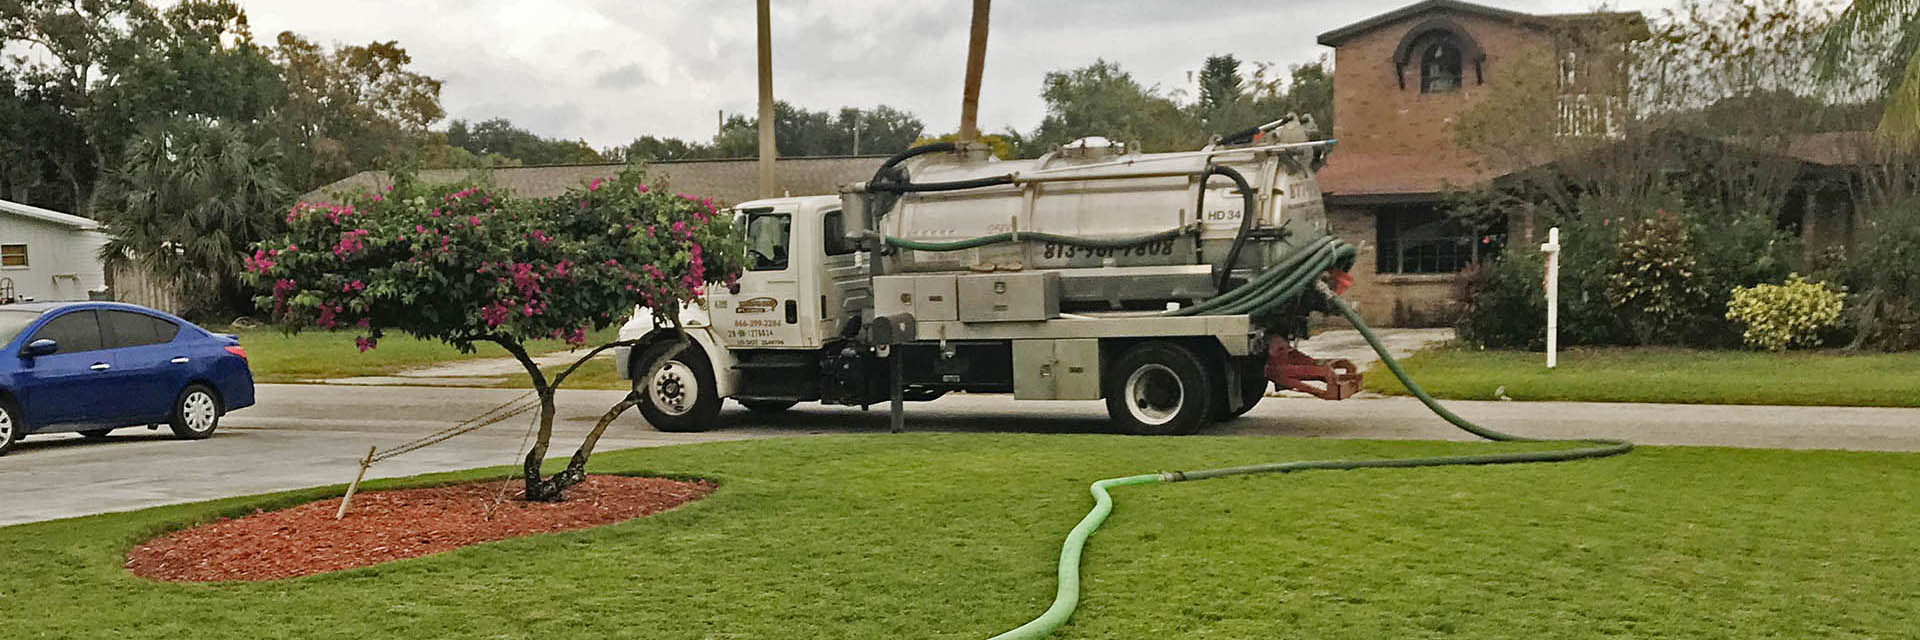 septic-pump-out-truck